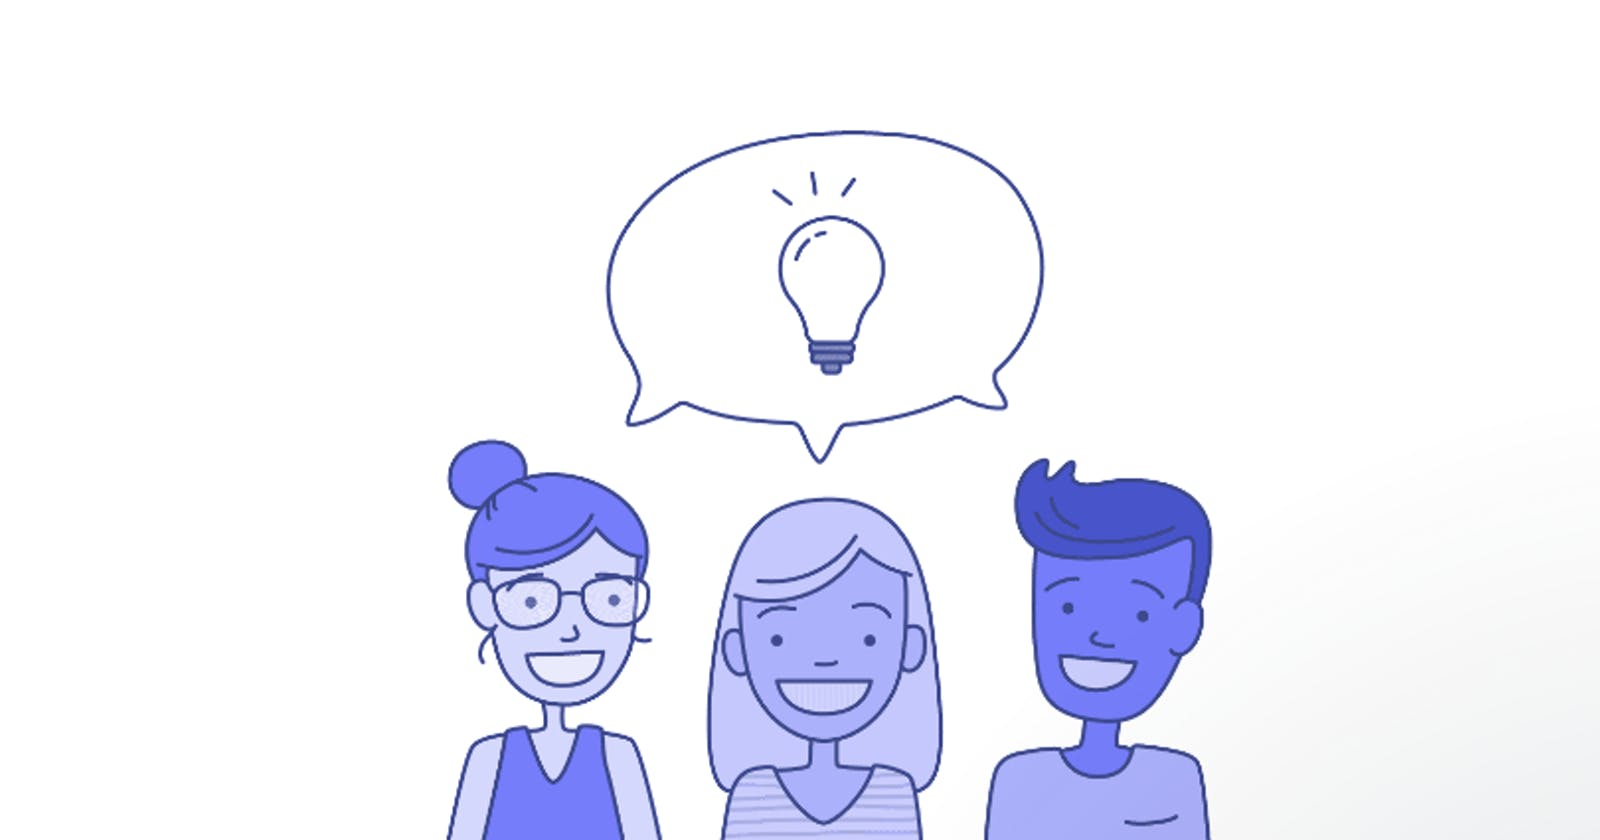 Savvy - Build better products with customer feedback